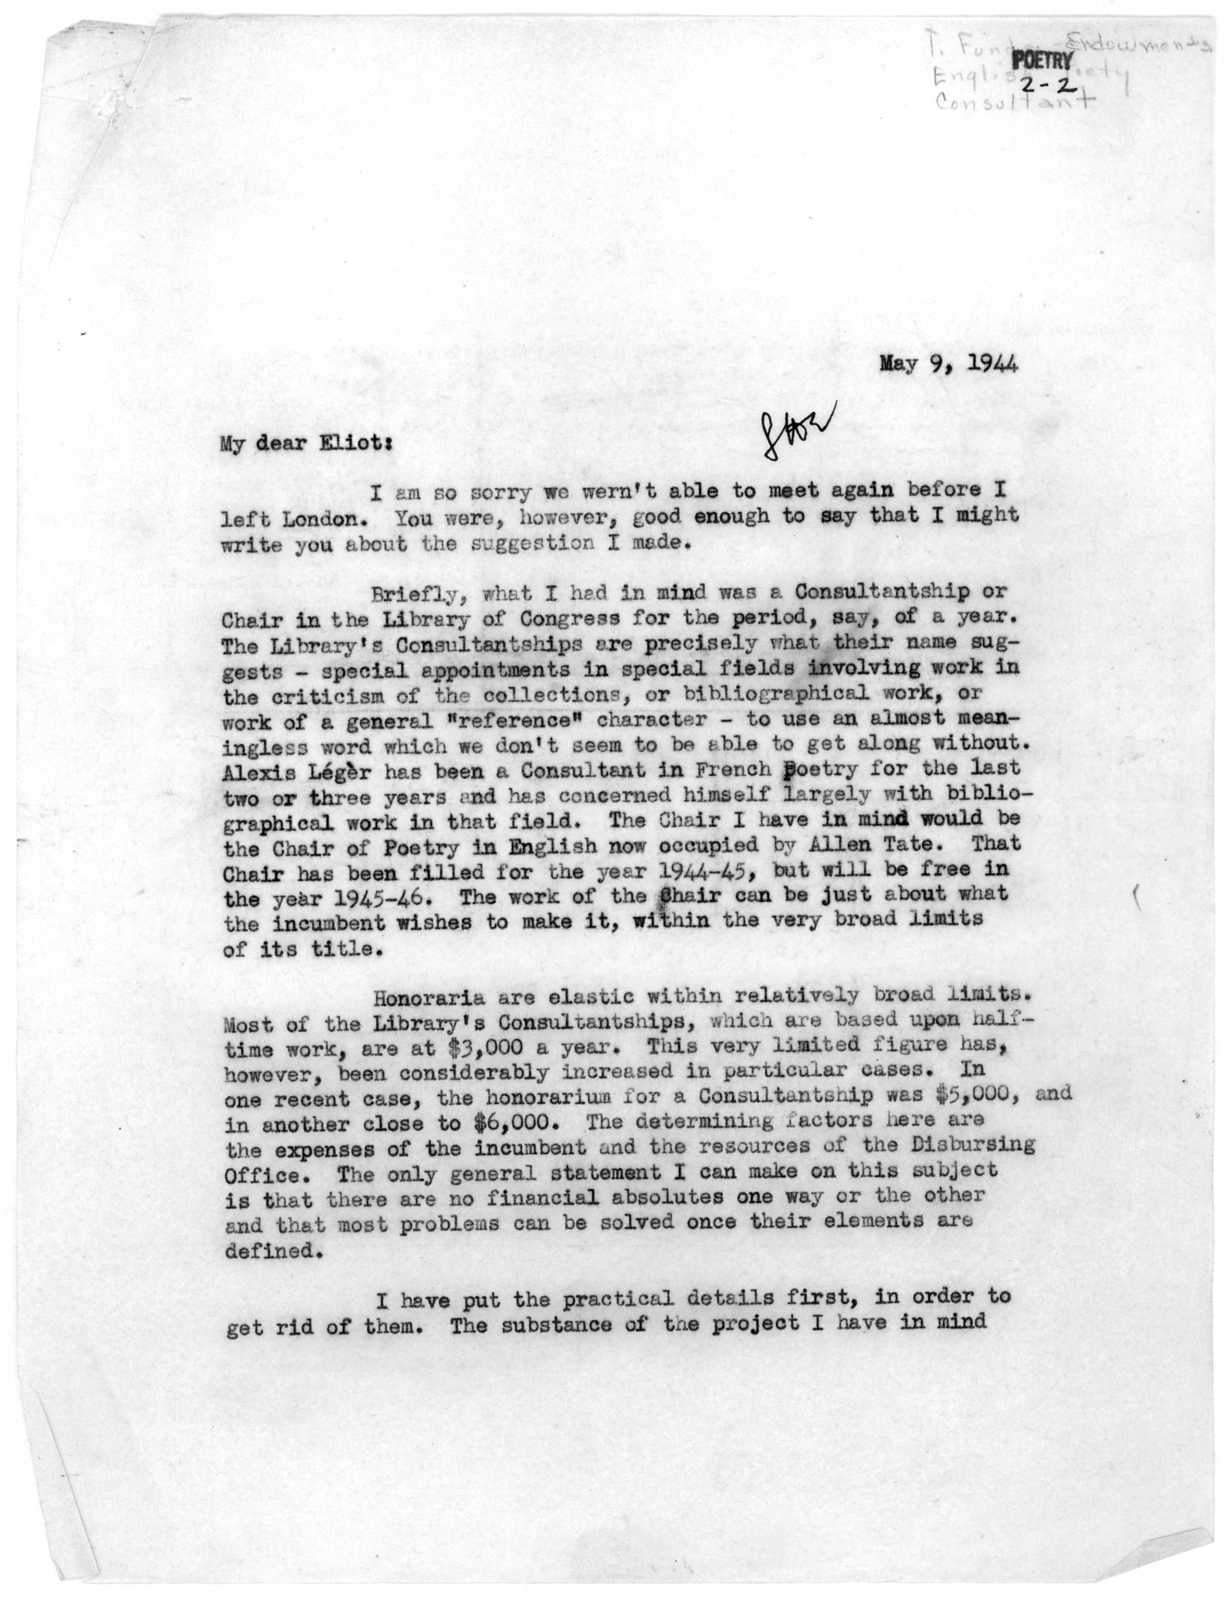 Letter from Archibald MacLeish to T.S. Eliot, May 9, 1944